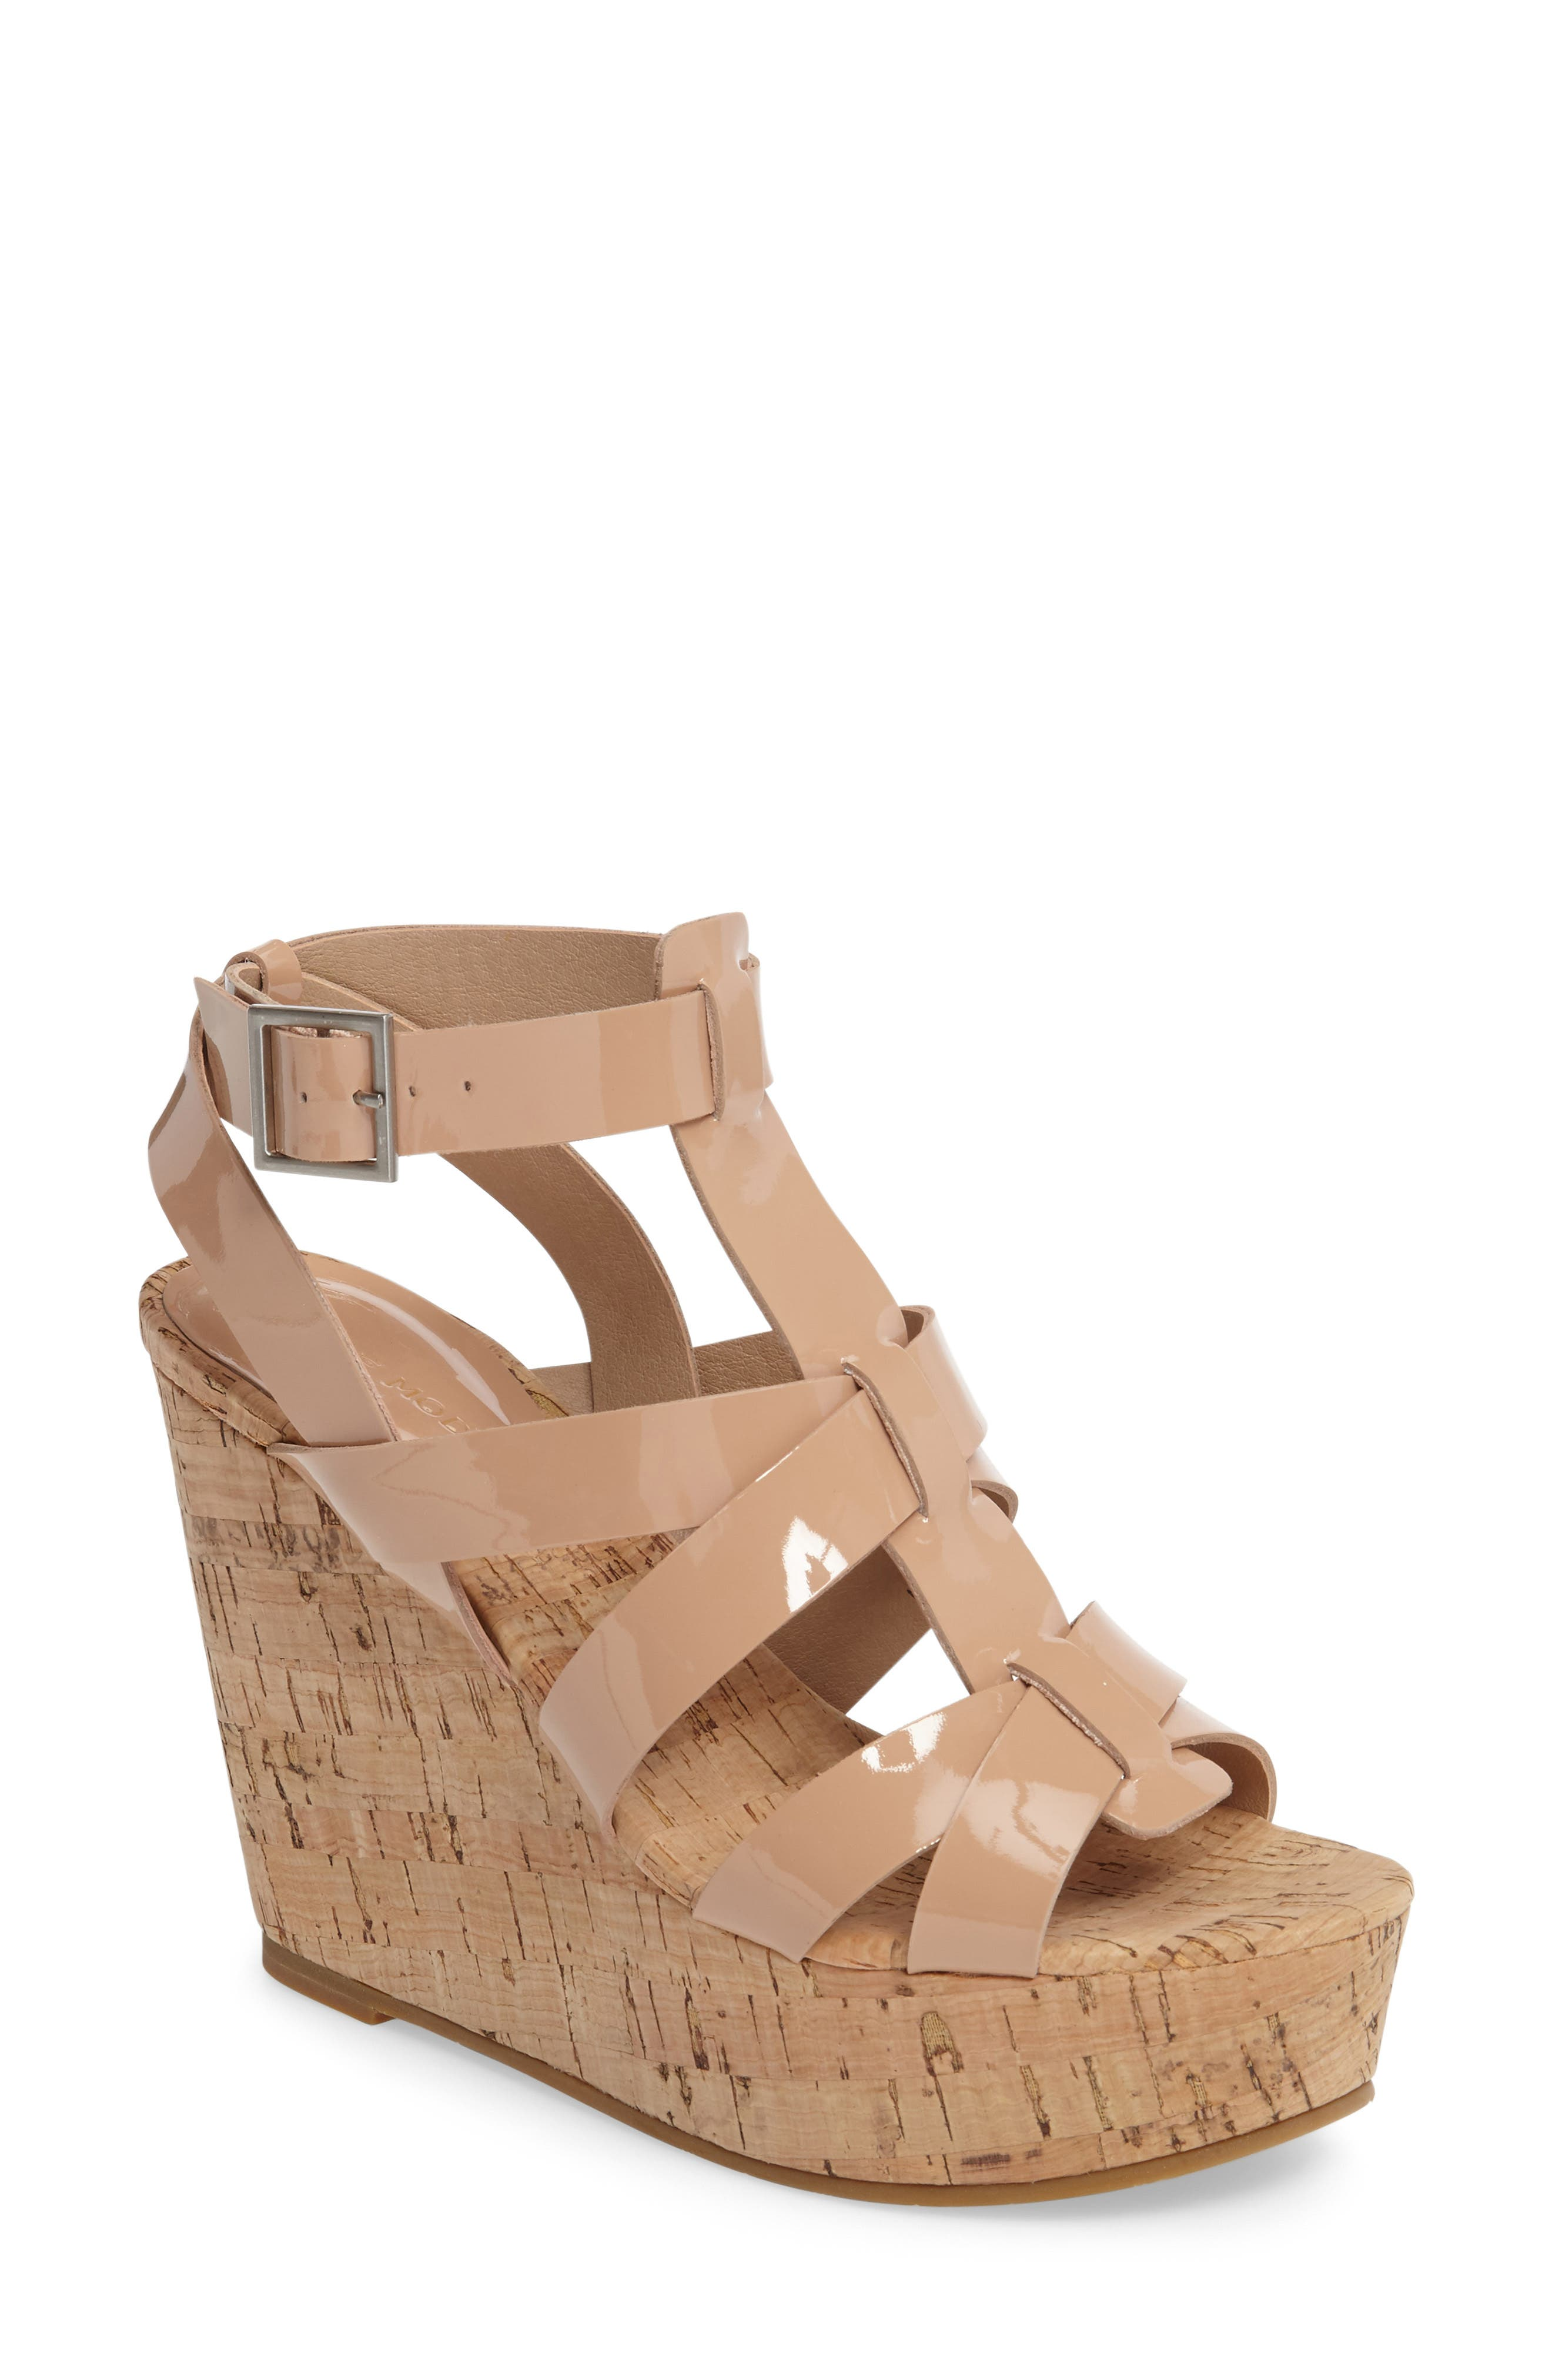 Rayjay Wedge Sandal,                         Main,                         color, Blush Leather